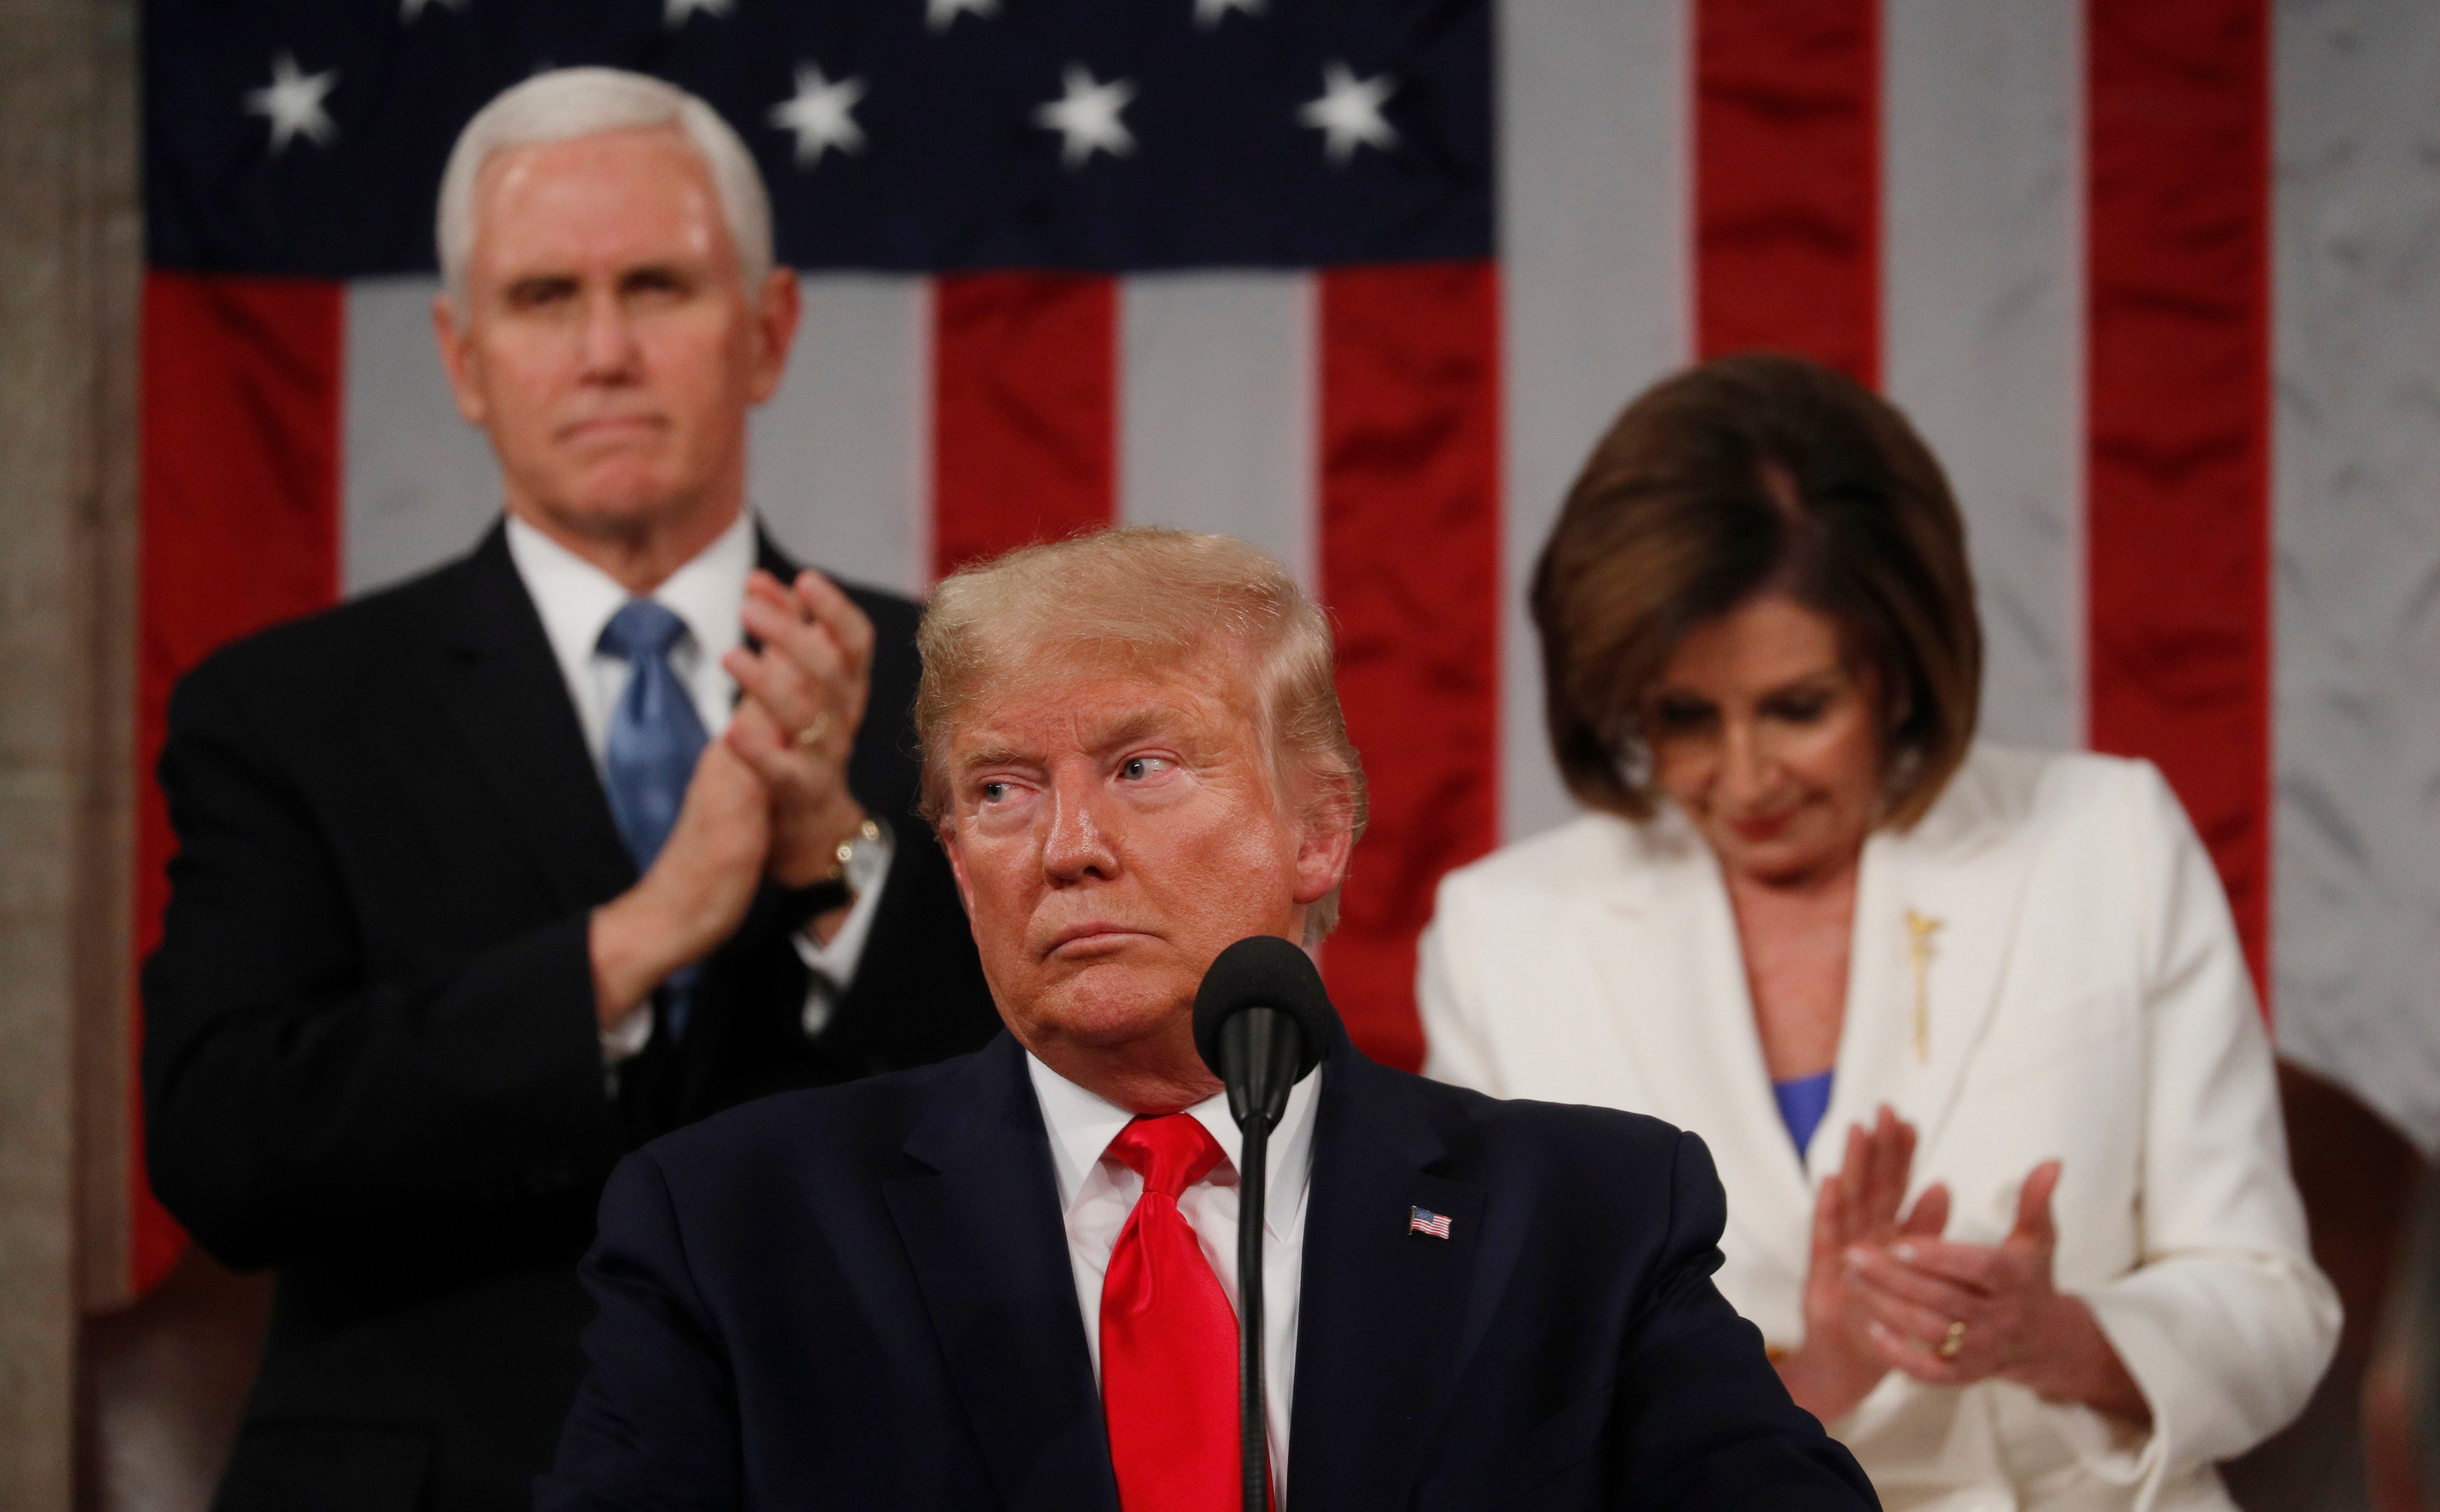 U.S. President Donald Trump delivers his State of the Union address to a joint session of the U.S. Congress in the House Chamber of the U.S. Capitol in Washington, U.S. Feb. 4, 2020. REUTERS/Leah Millis/POOL